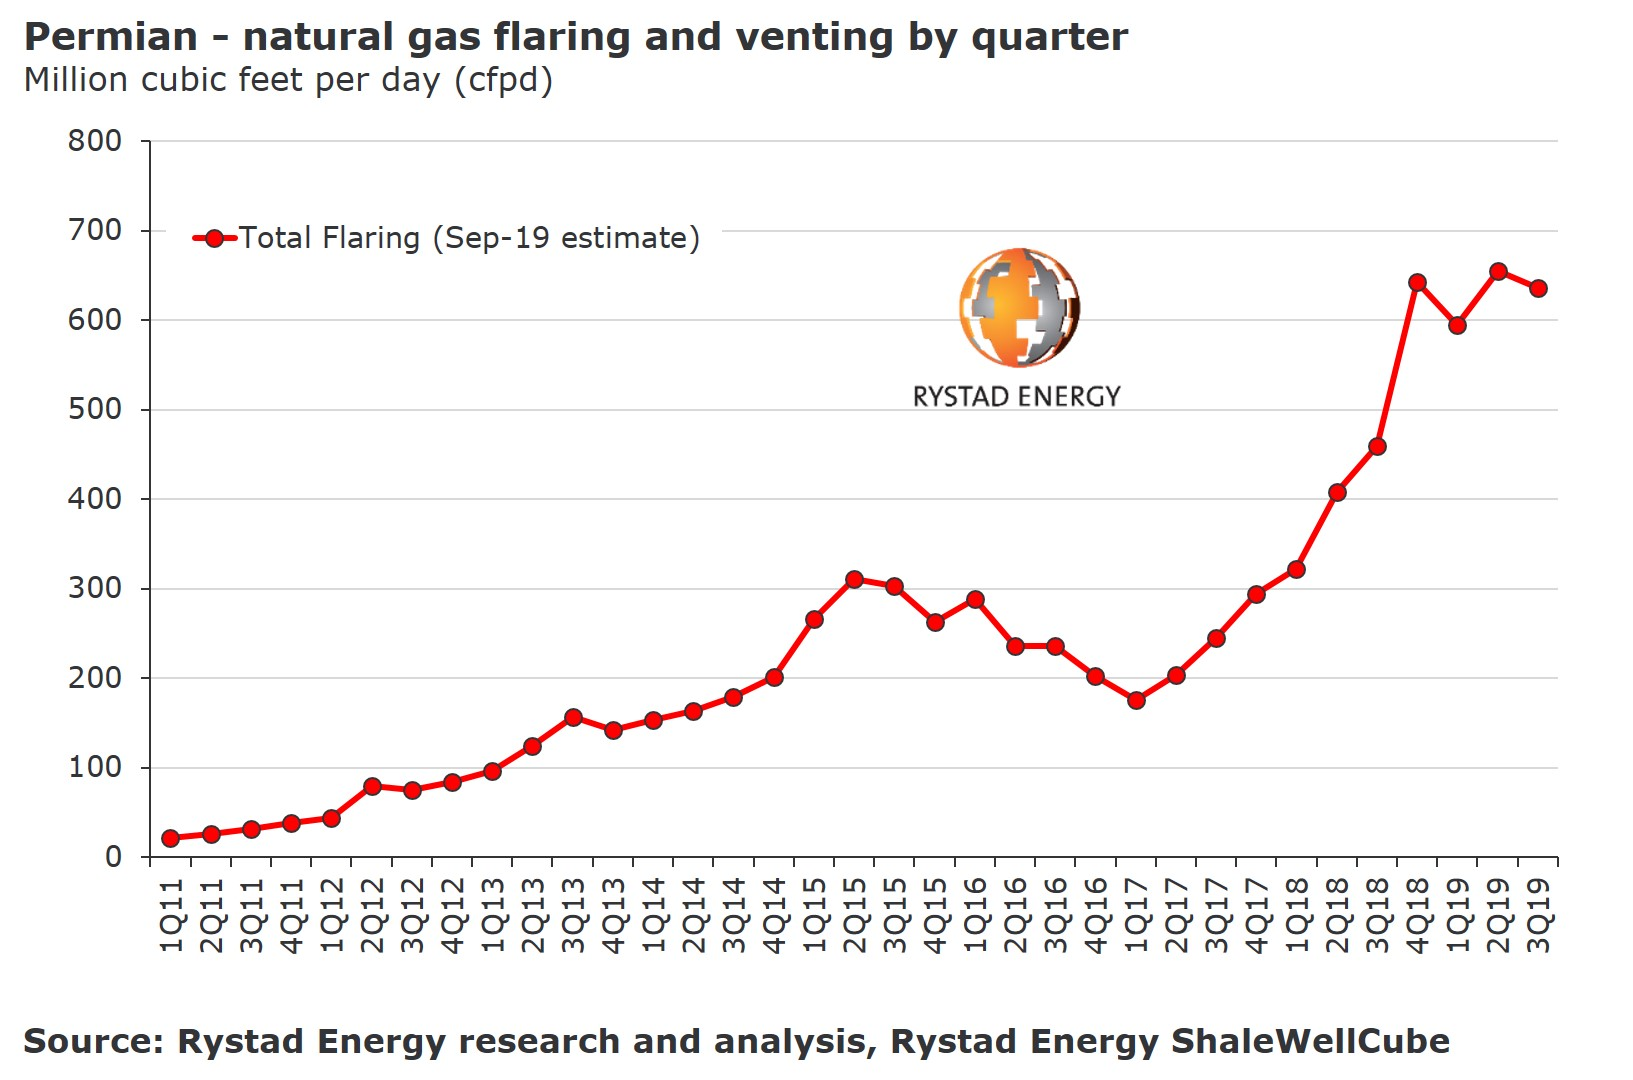 20191007_PR Chart 1 v3 Permian flaring and venting by quarter.jpg